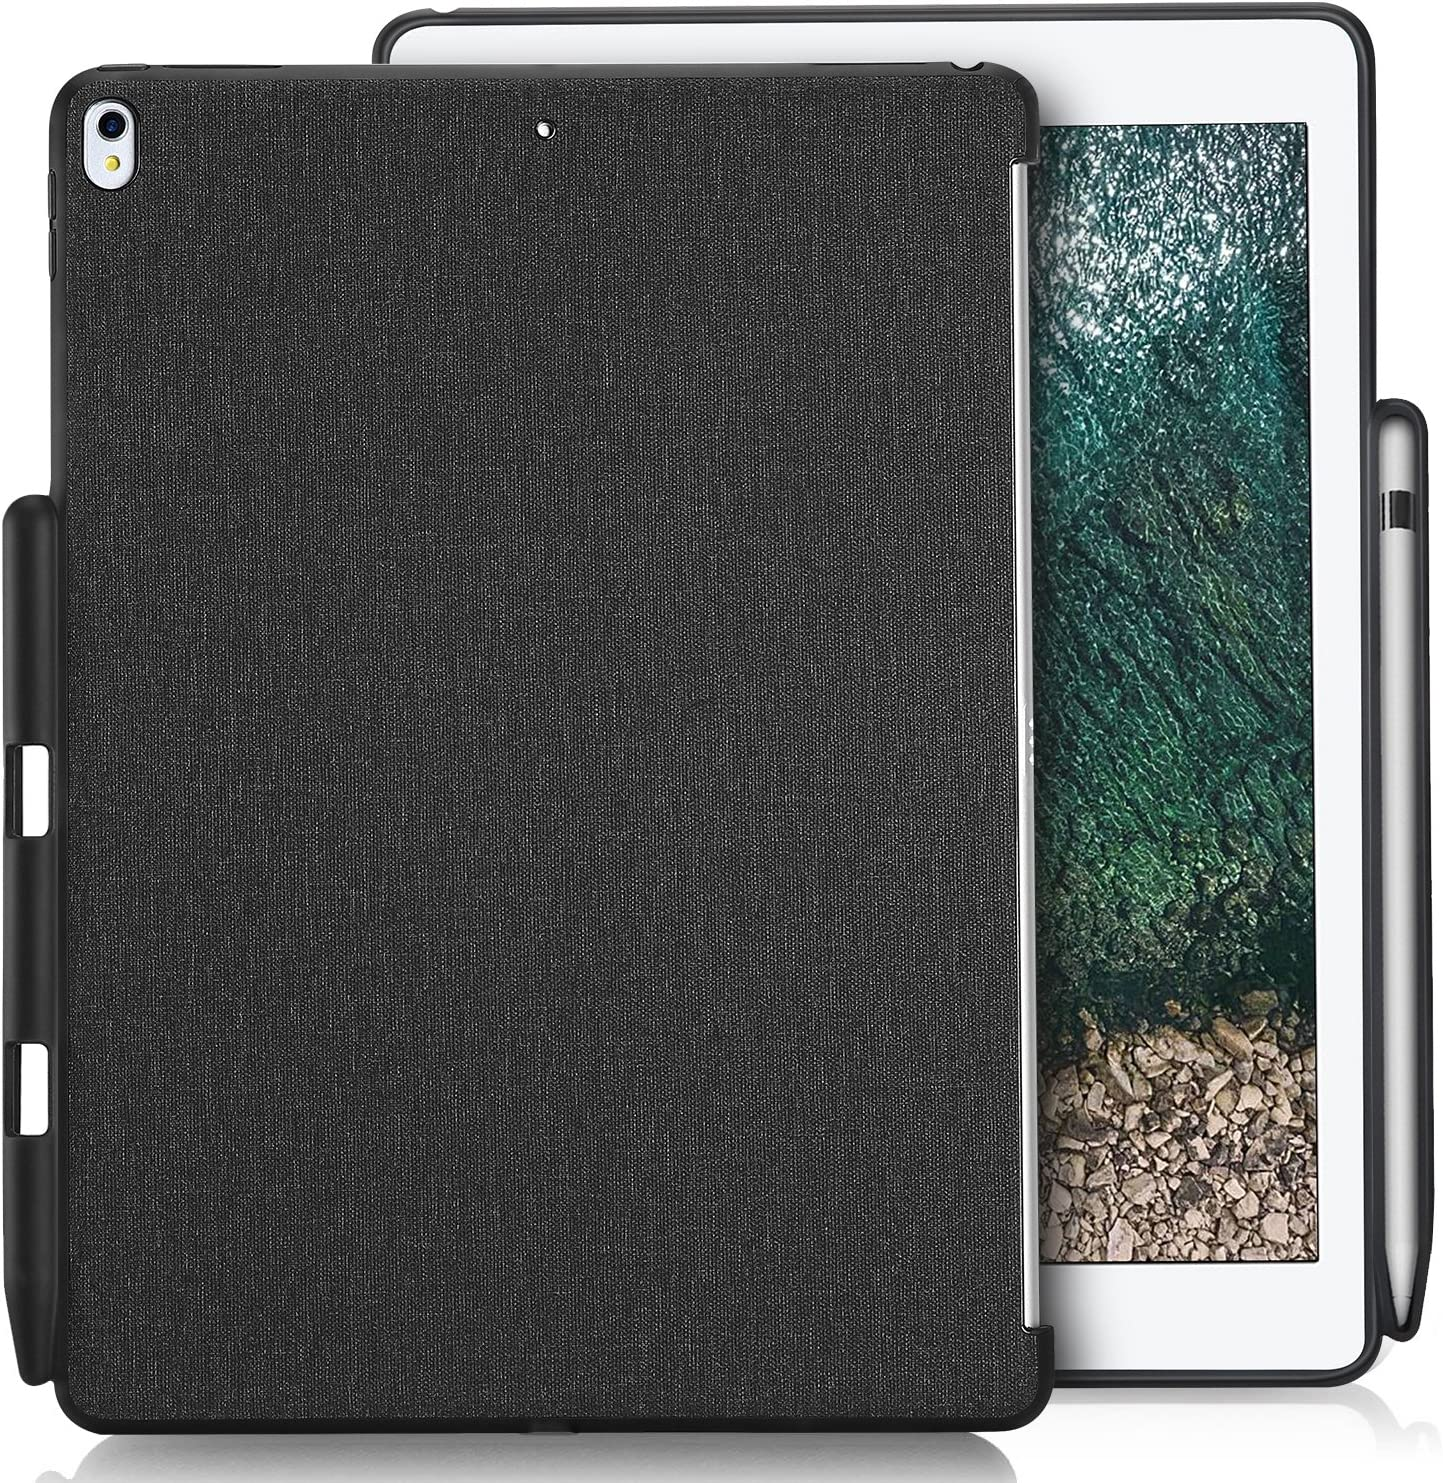 """ProCase iPad Air 10.5"""" (3rd Gen) 2019 / iPad Pro 10.5 2017 Case, Companion Back Cover with Apple Pencil Holder for 10.5"""" iPad Air/iPad Pro 10.5, Work with Apple Smart Keyboard and Smart Cover –Black"""